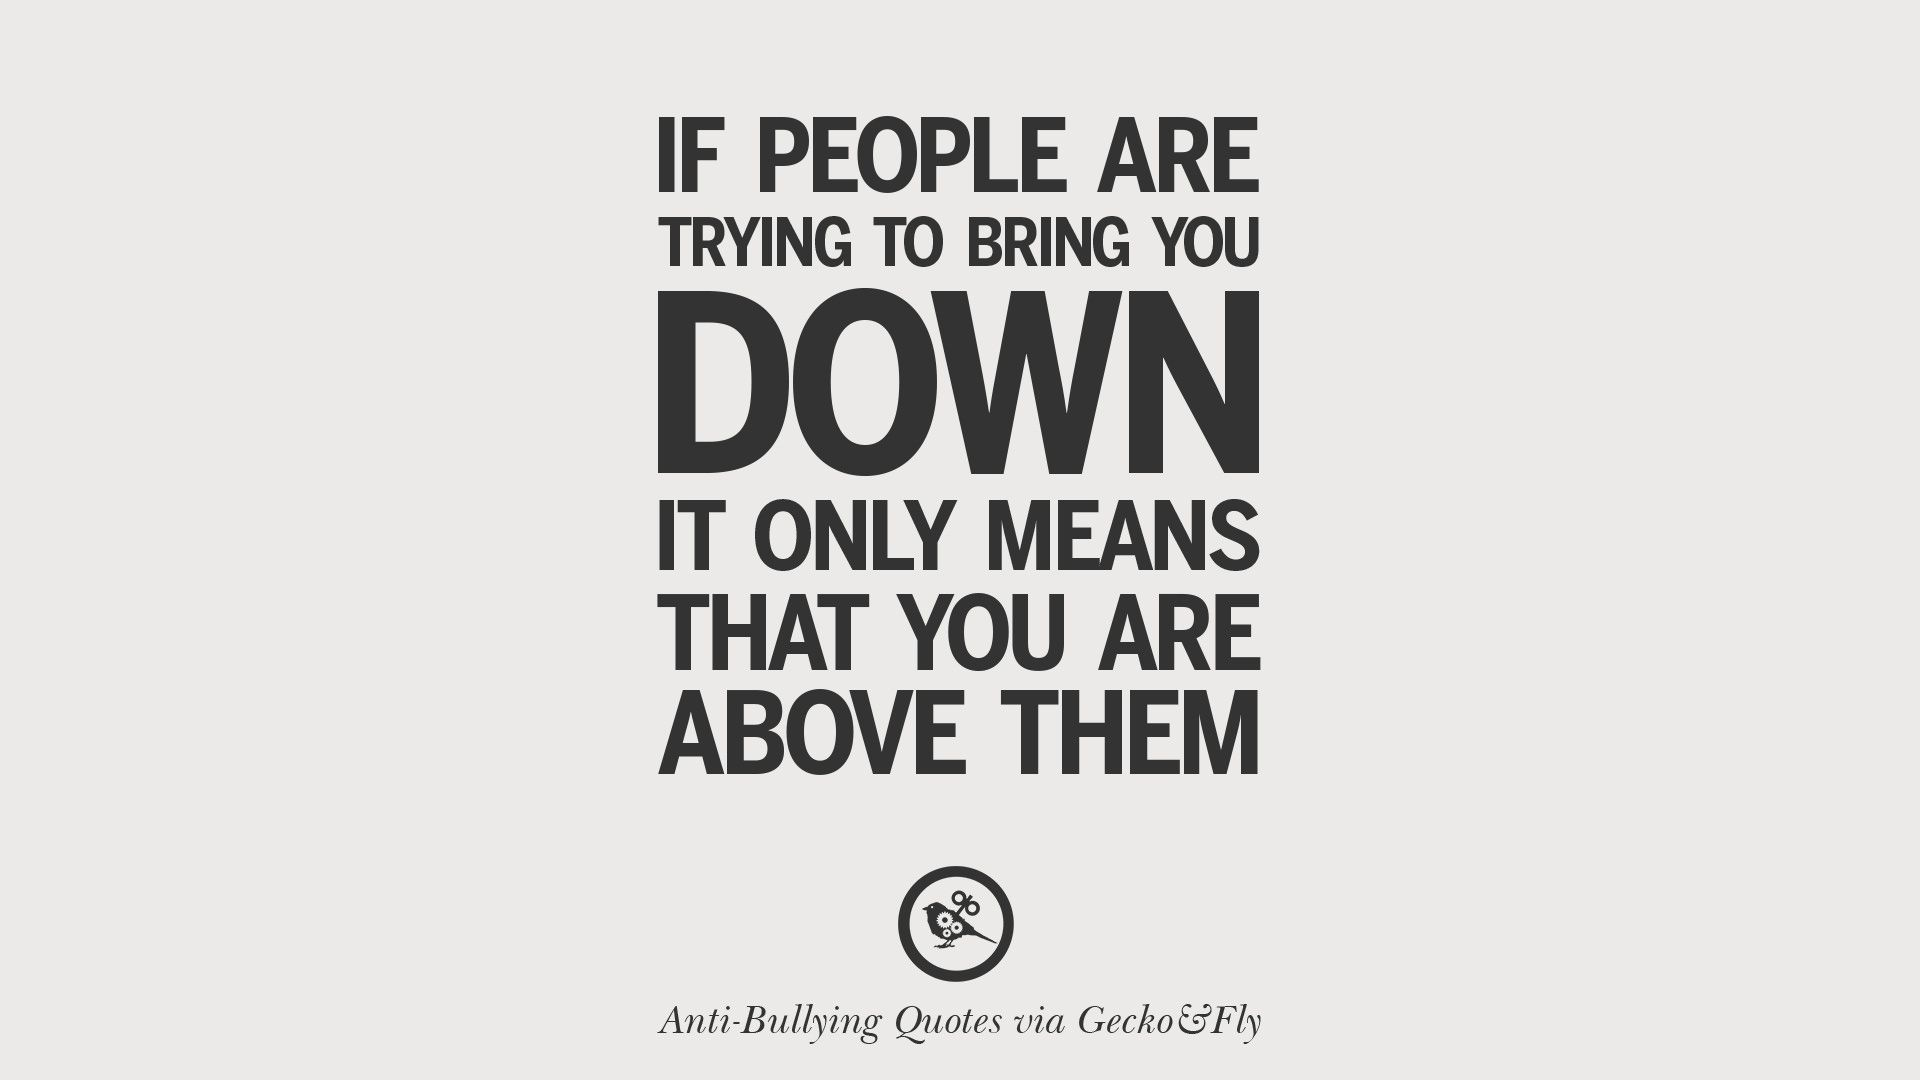 Related Image Bullying Quotes Cyber Bullying Quotes Anti Bully Quotes